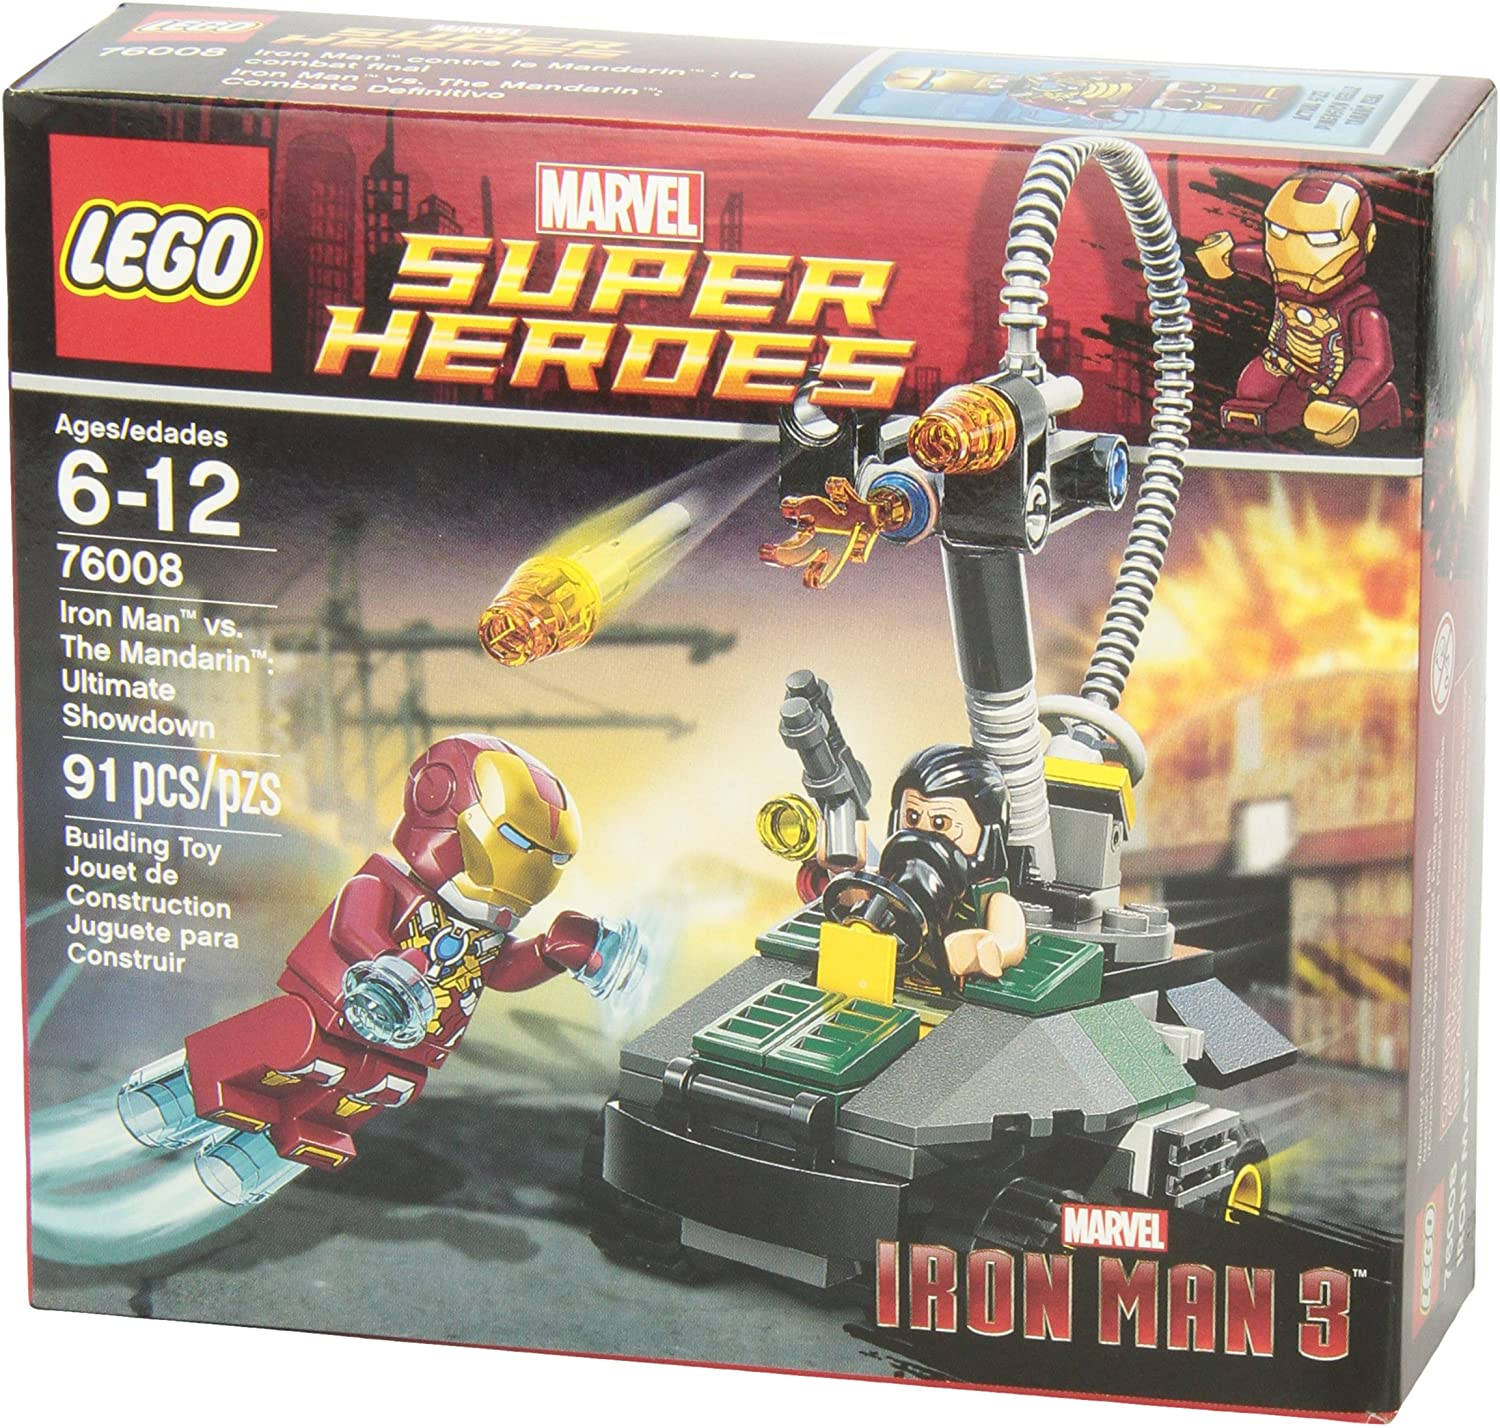 Super Heroes Iron Man vs. The Mandarin Ultimate Showdown (76008)